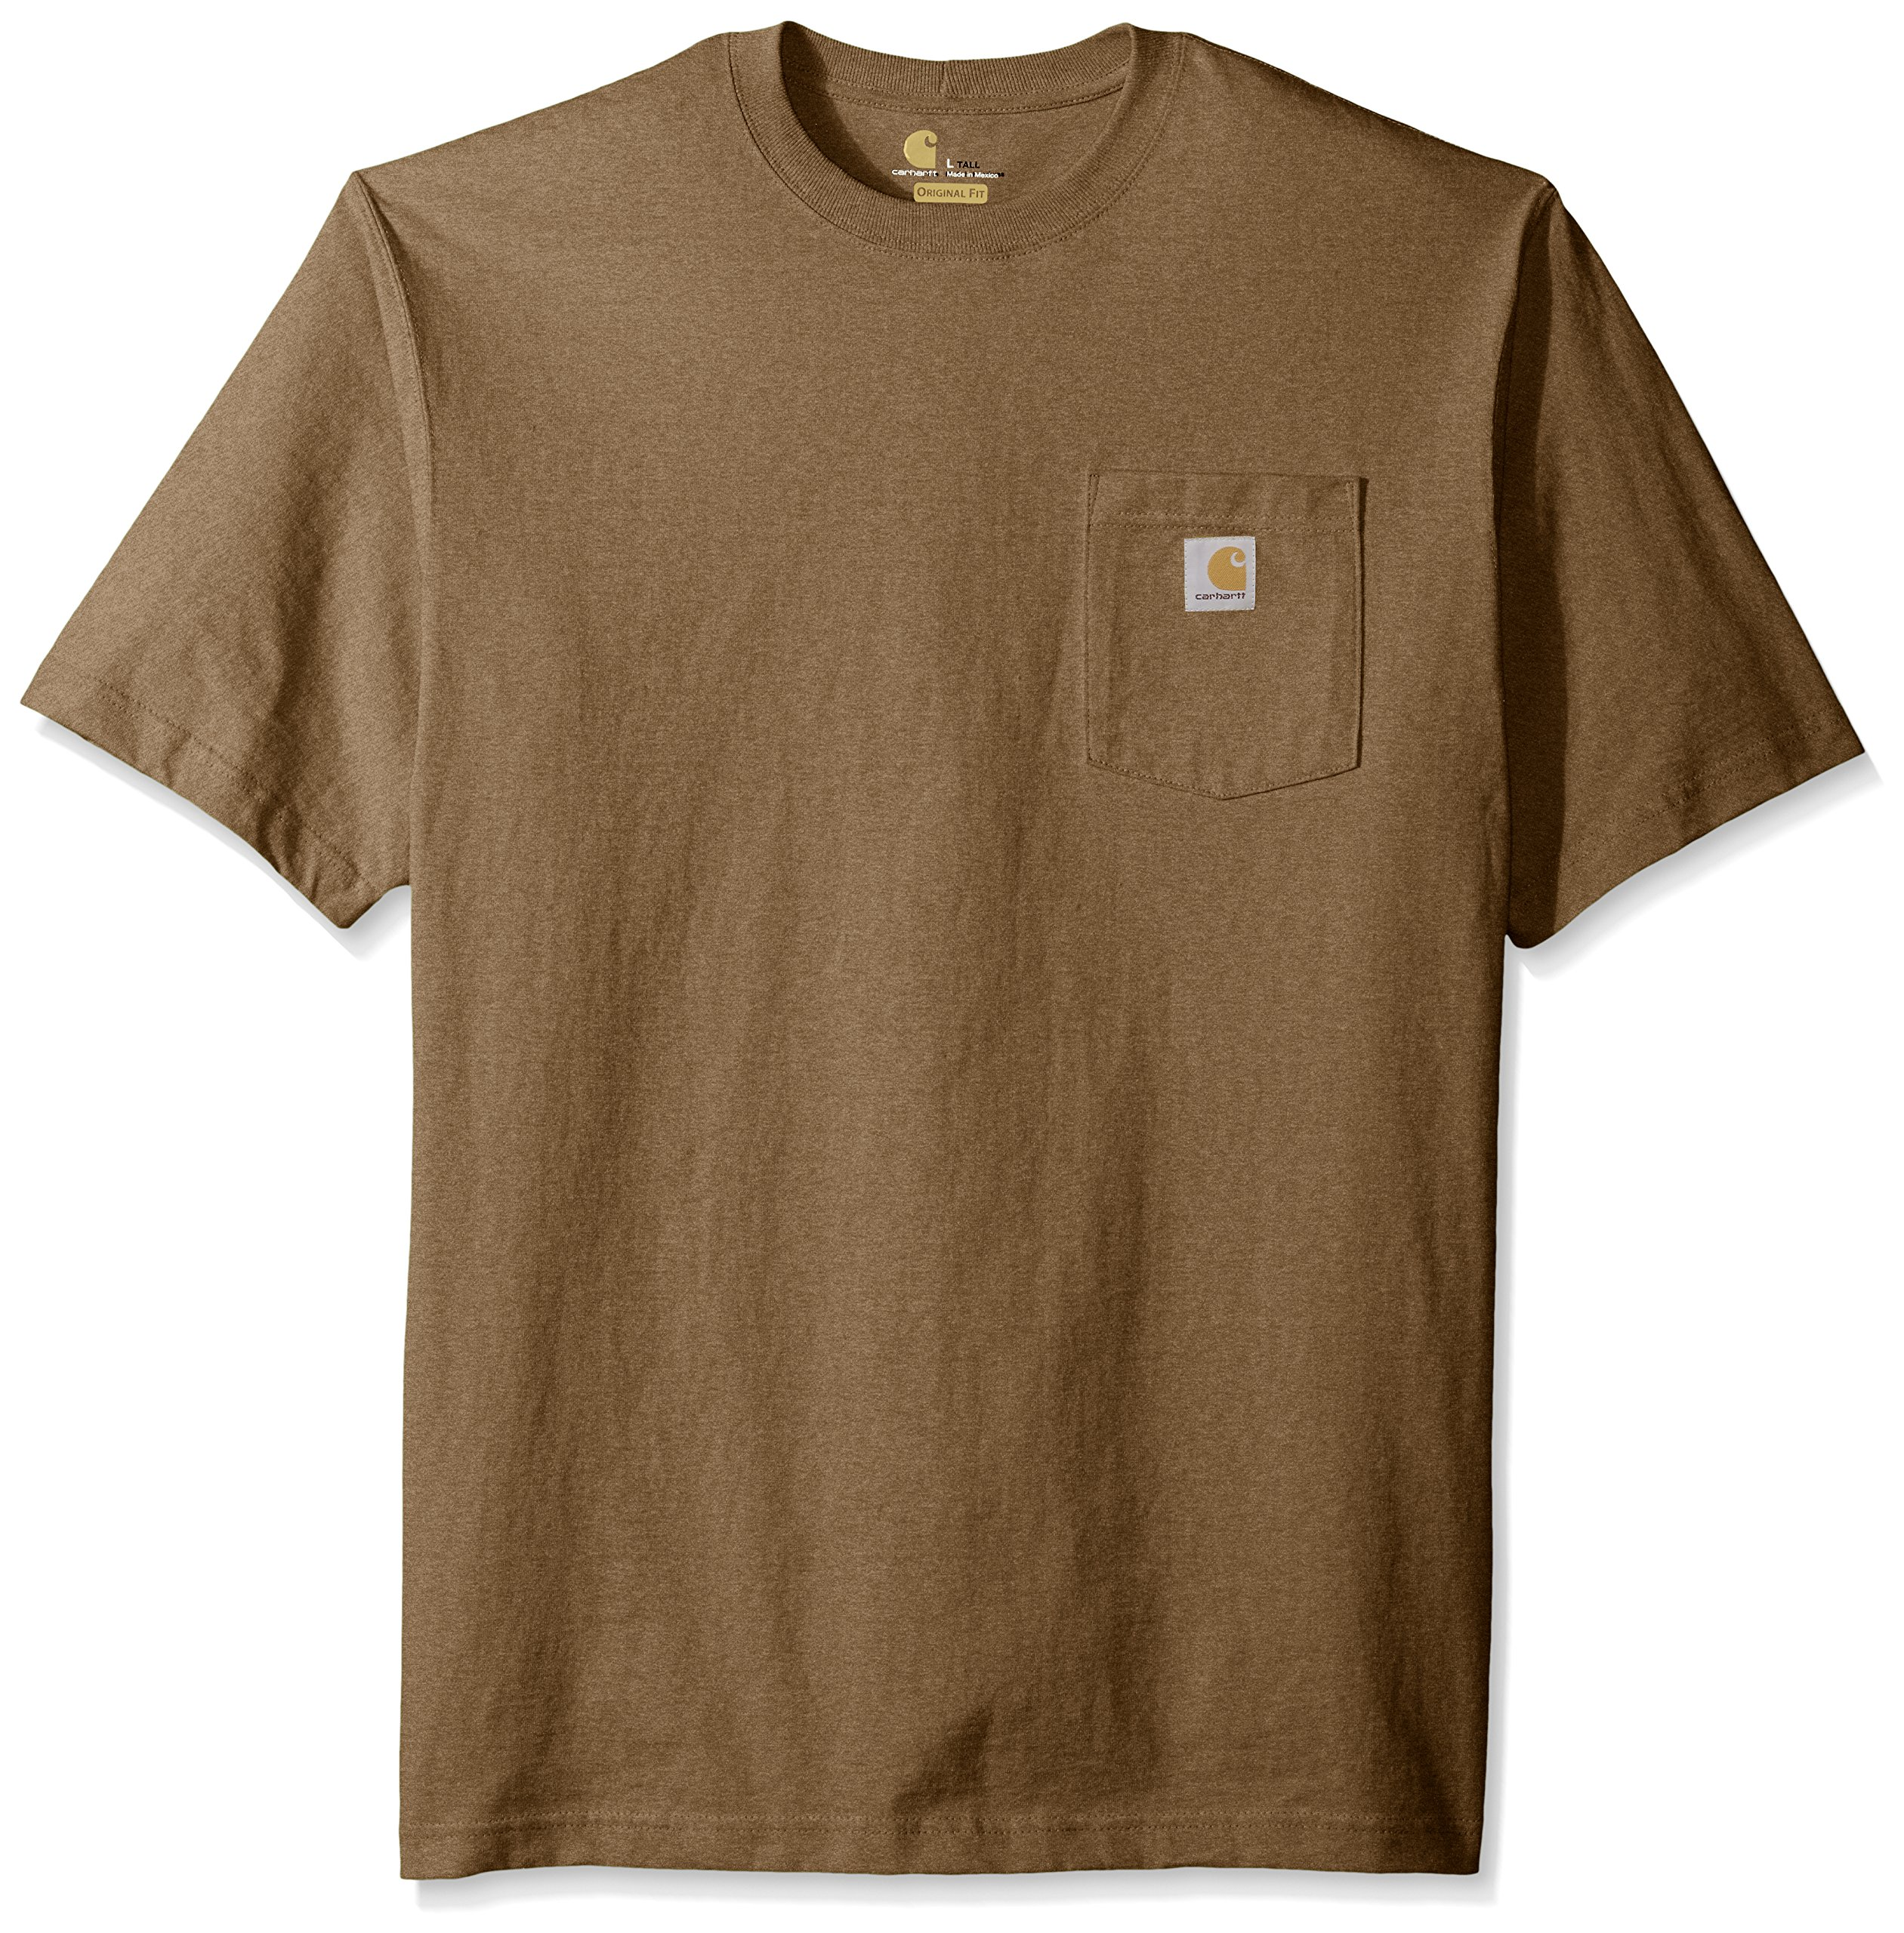 Carhartt Men's Big and Tall Workwear Pocket Short Sleeve T-Shirt Original Fit K87, Barrel Heather, X-Large